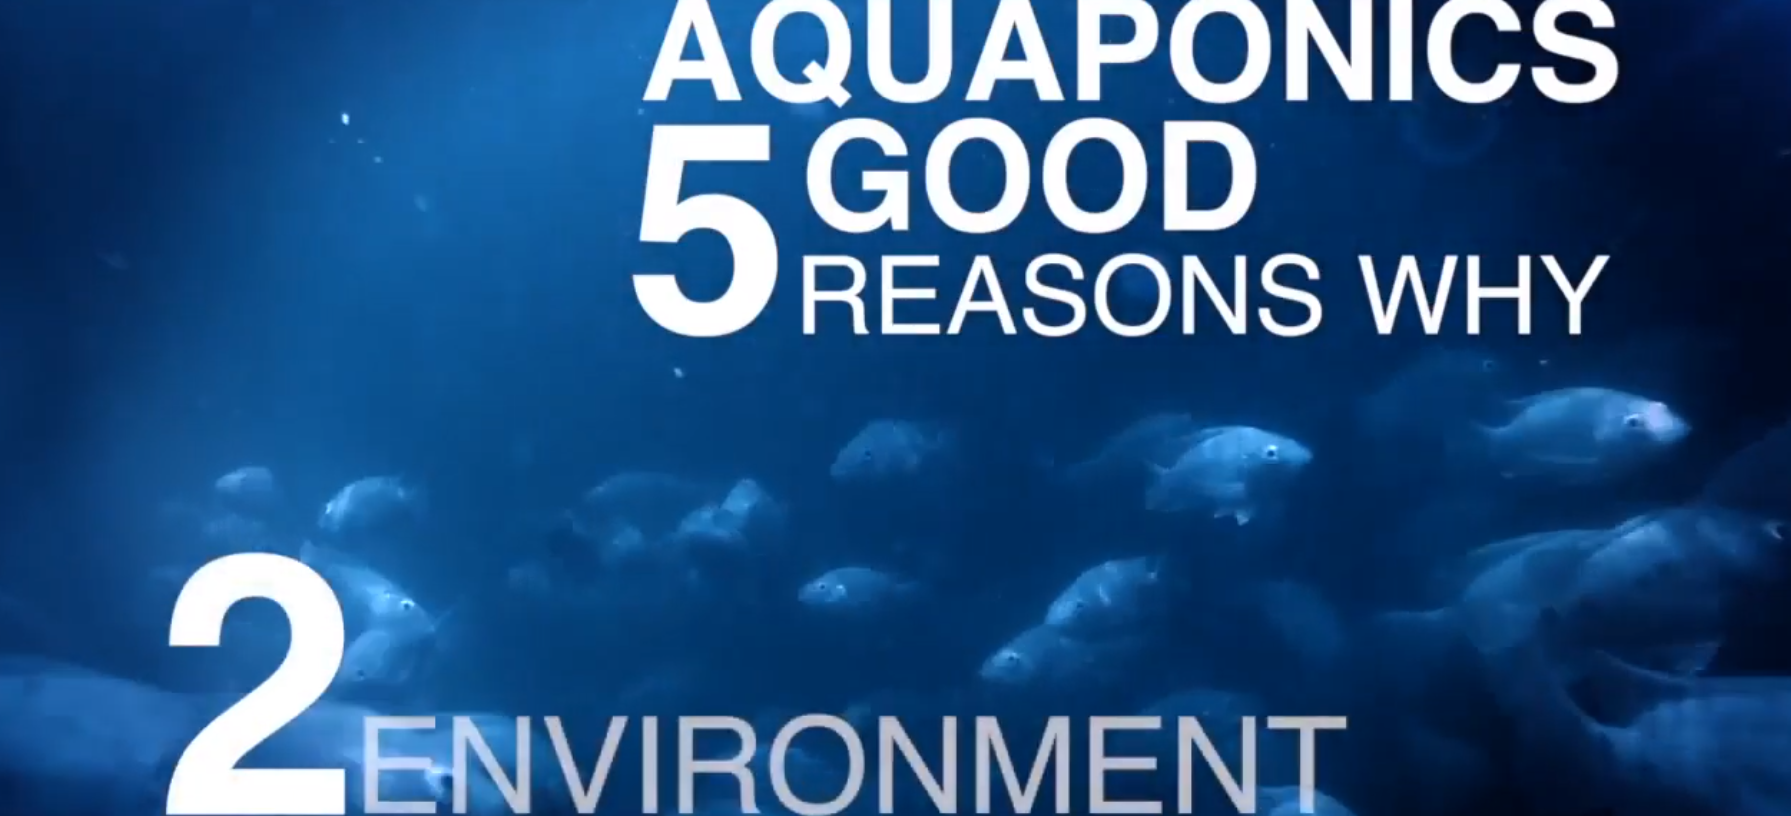 5 Good Reasons for Aquaponics: Reason 2 – Optimized Use of Natural Resources